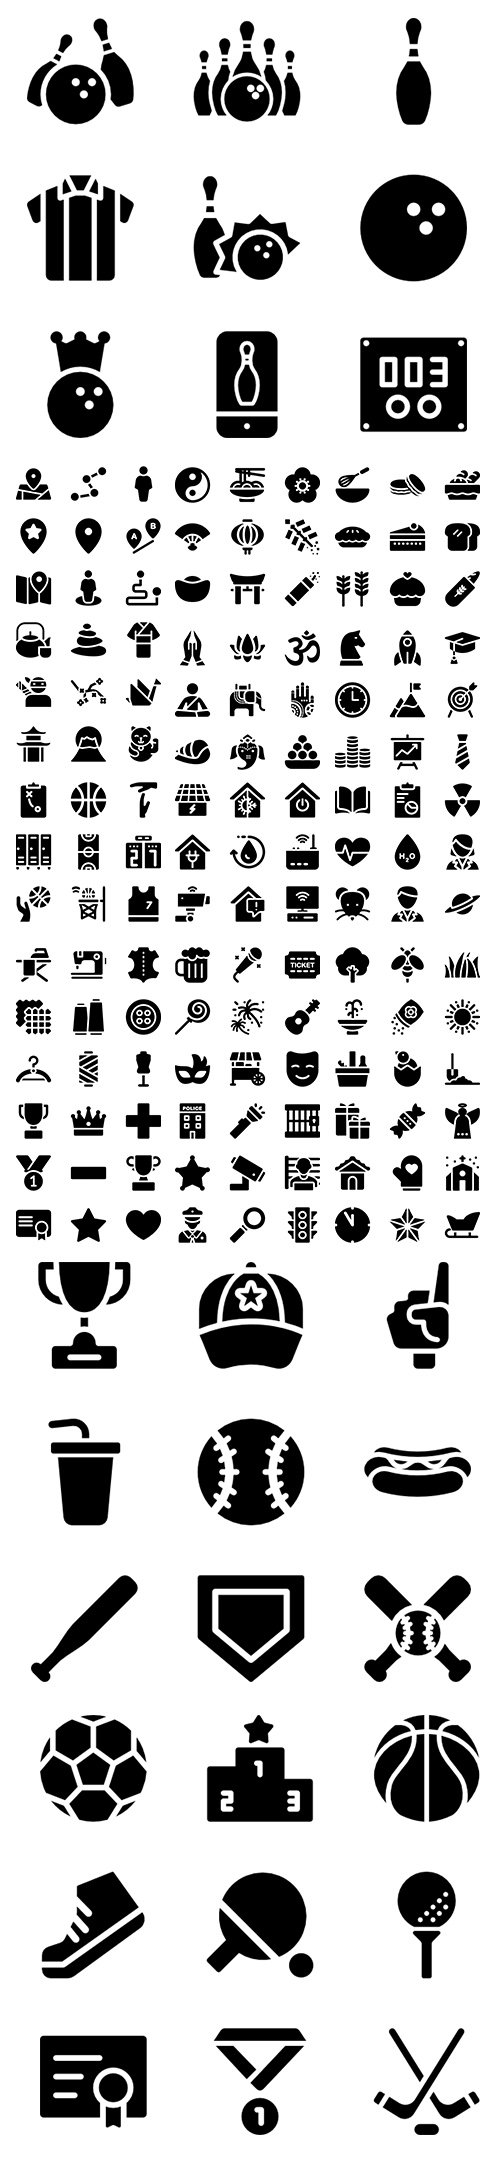 450+ Curved Fill Vector Icons Set